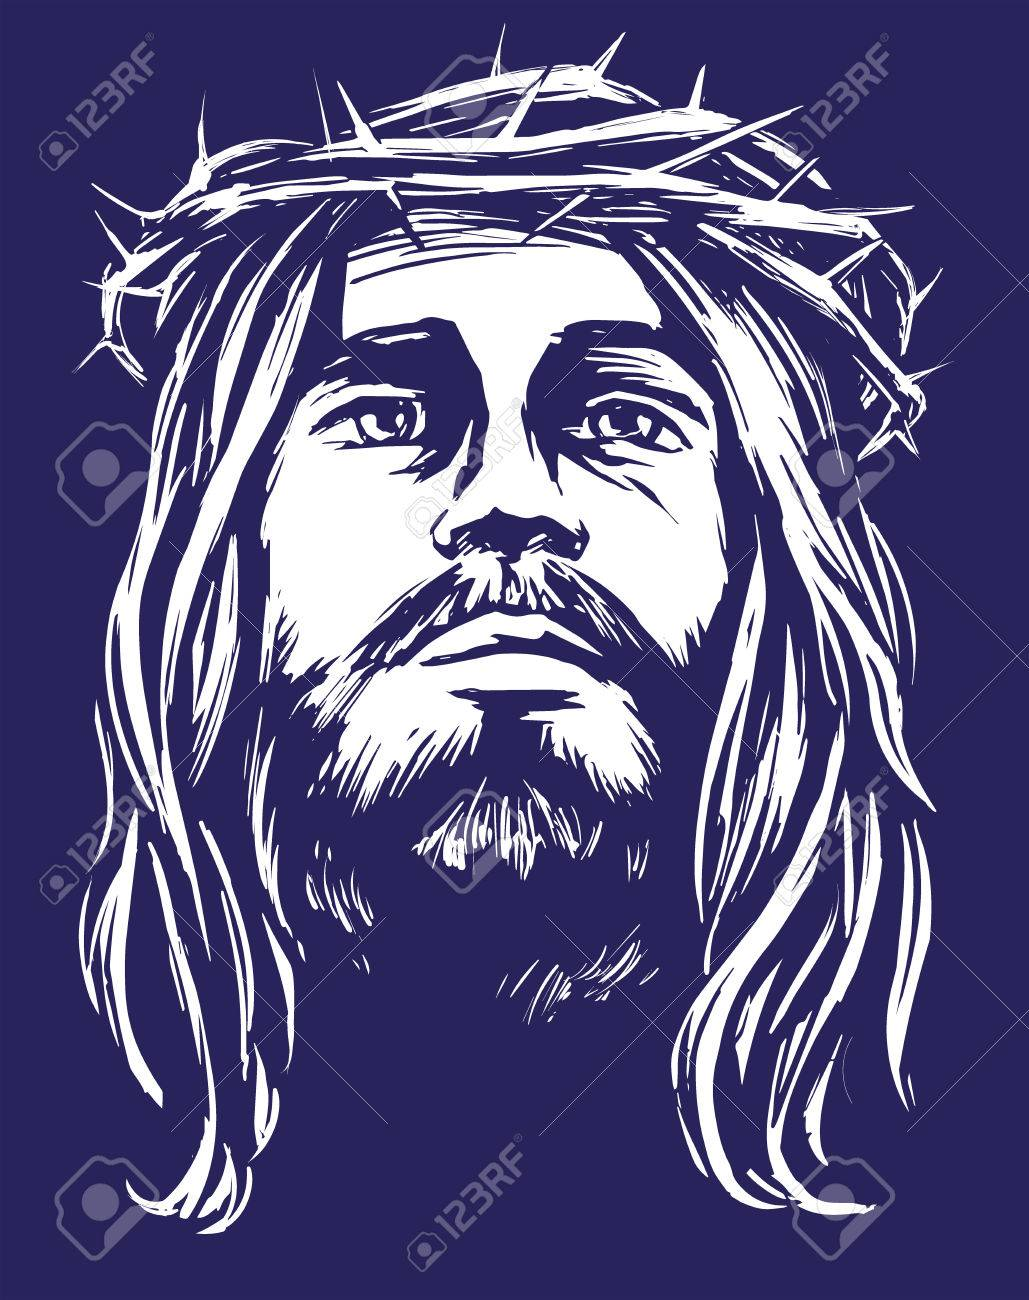 1029x1300 Jesus Christ, The Son Of God In A Crown Of Thorns On His Head